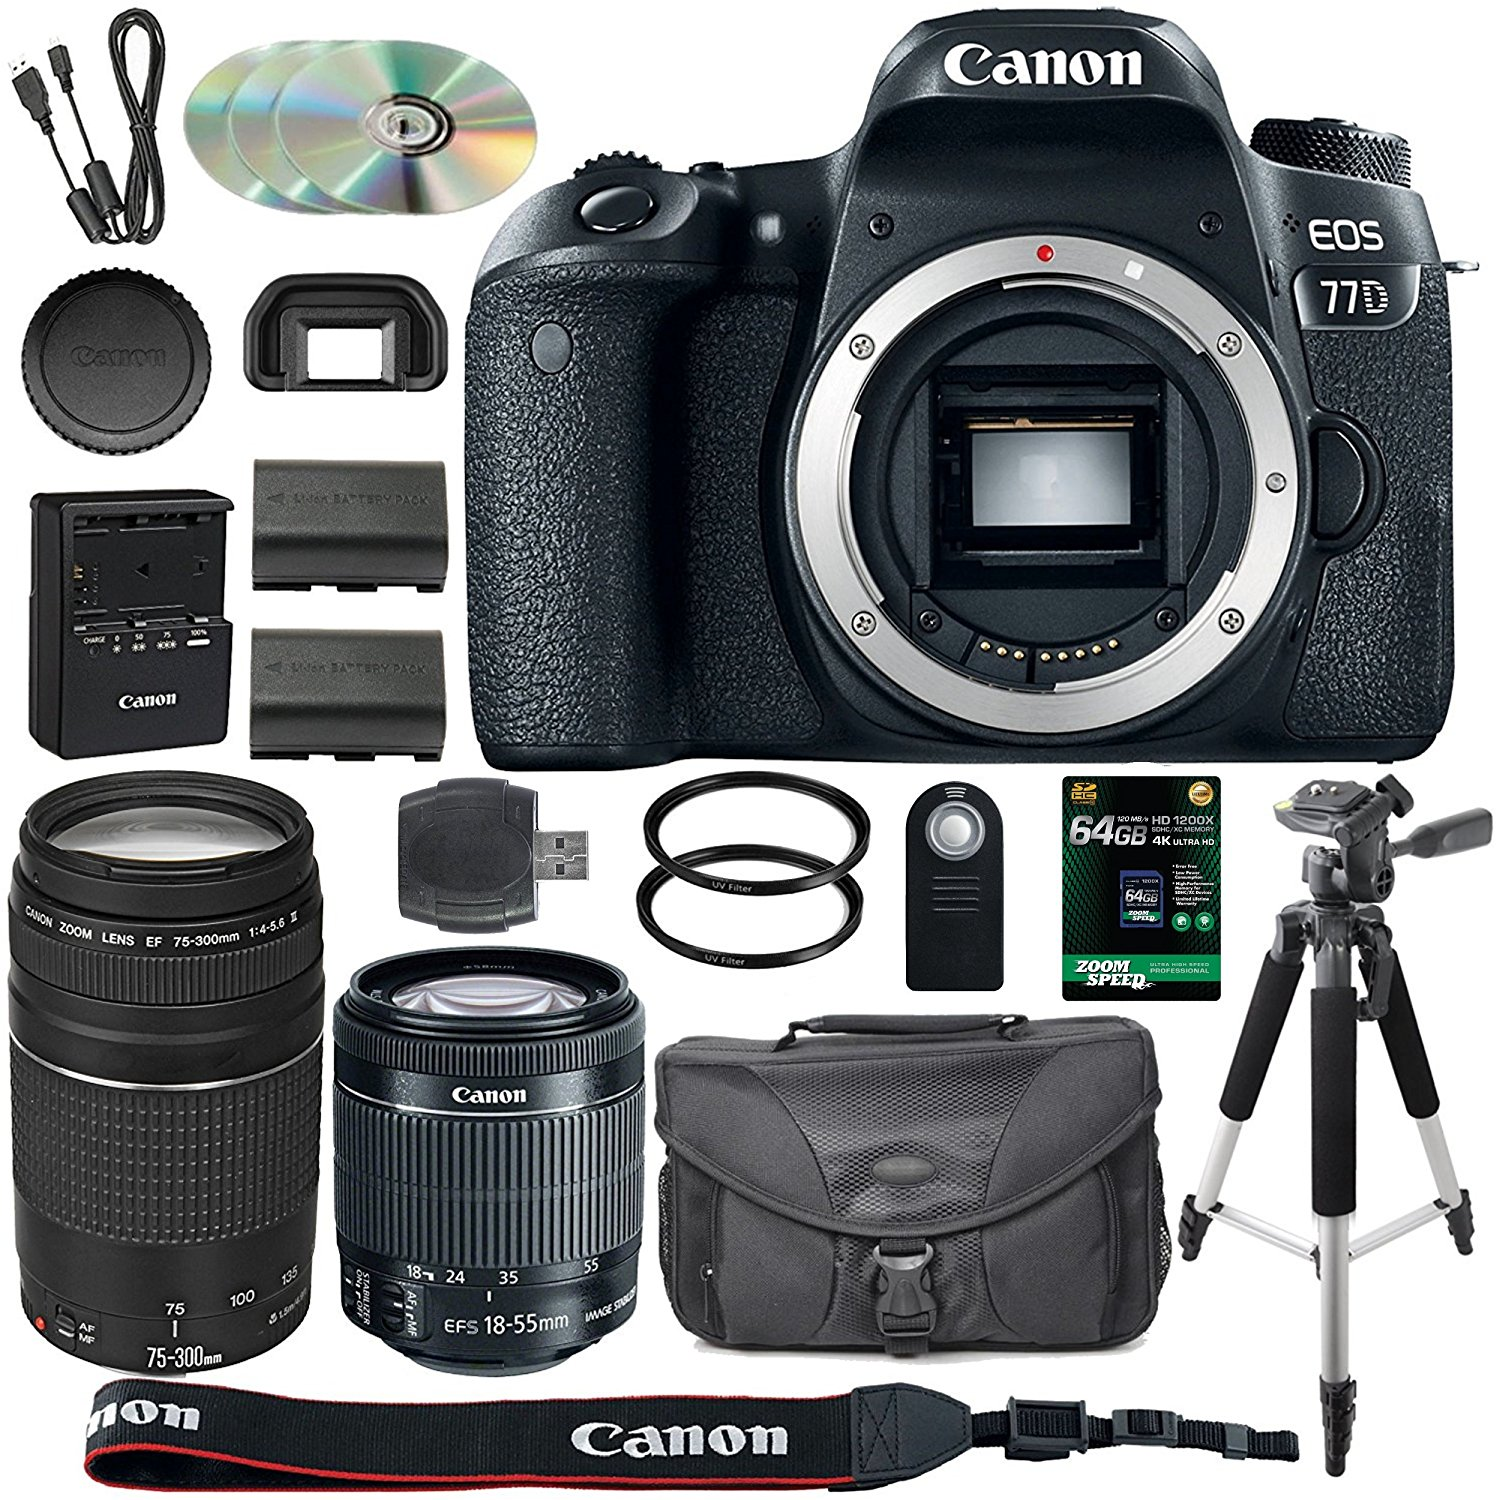 Canon EOS 77D DSLR Camera + 18-55mm STM + 75-300mm III Lens + Spare LP-E17 Battery + Two Ultraviolet Filters + 64GB SDXC Card + SLR Bag + Remote + Tripod & More